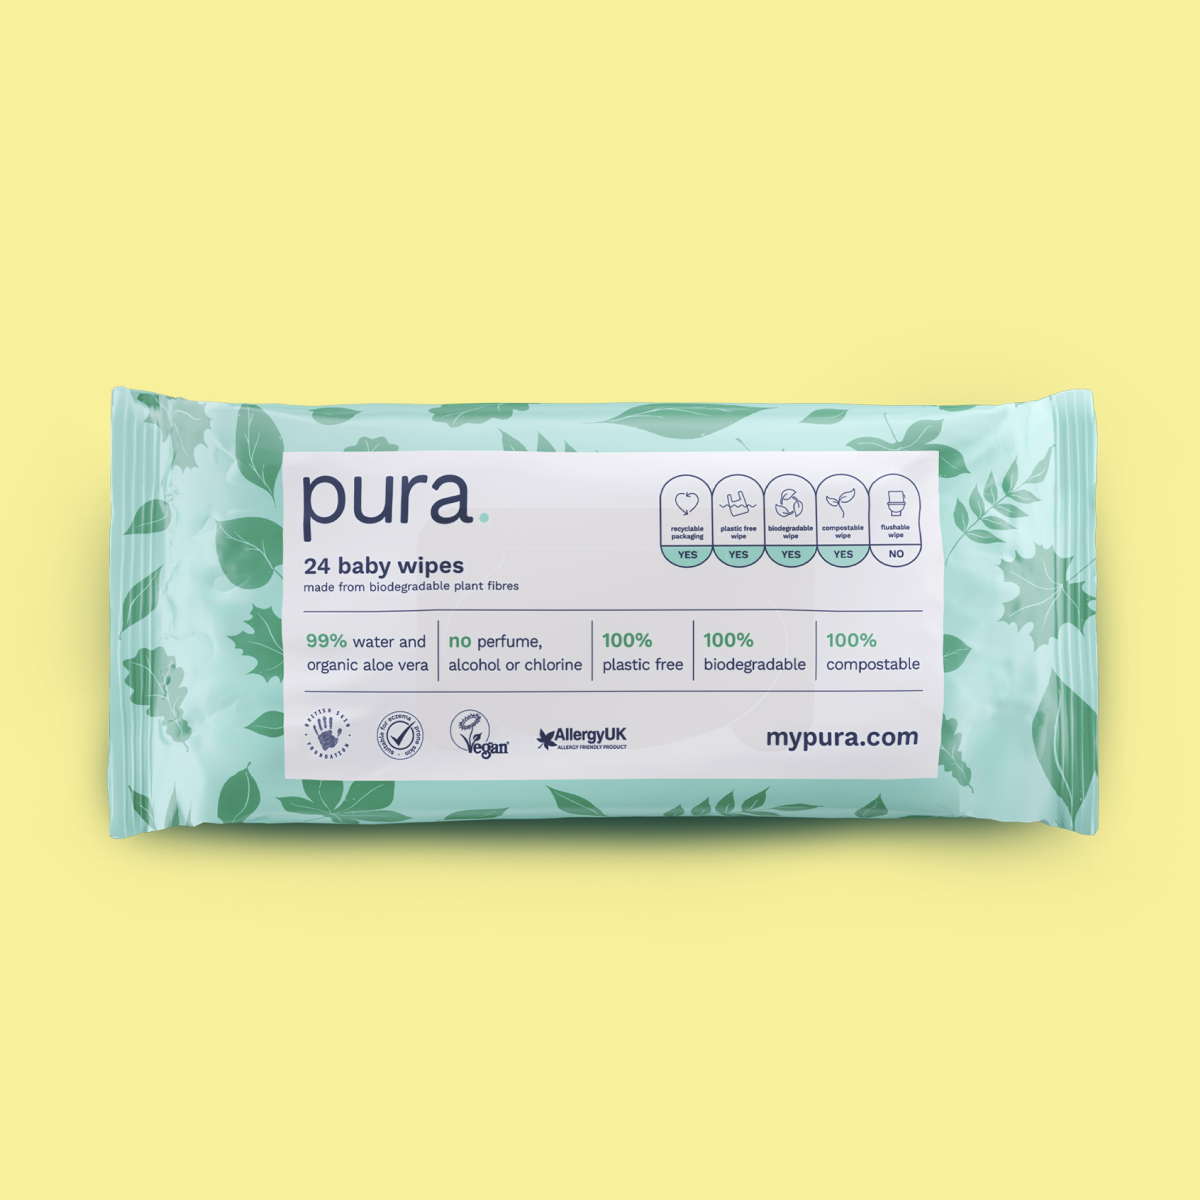 Try Pura 24 Pack Baby Wipes & 2 Potato Bags for Free (99p Delivery)